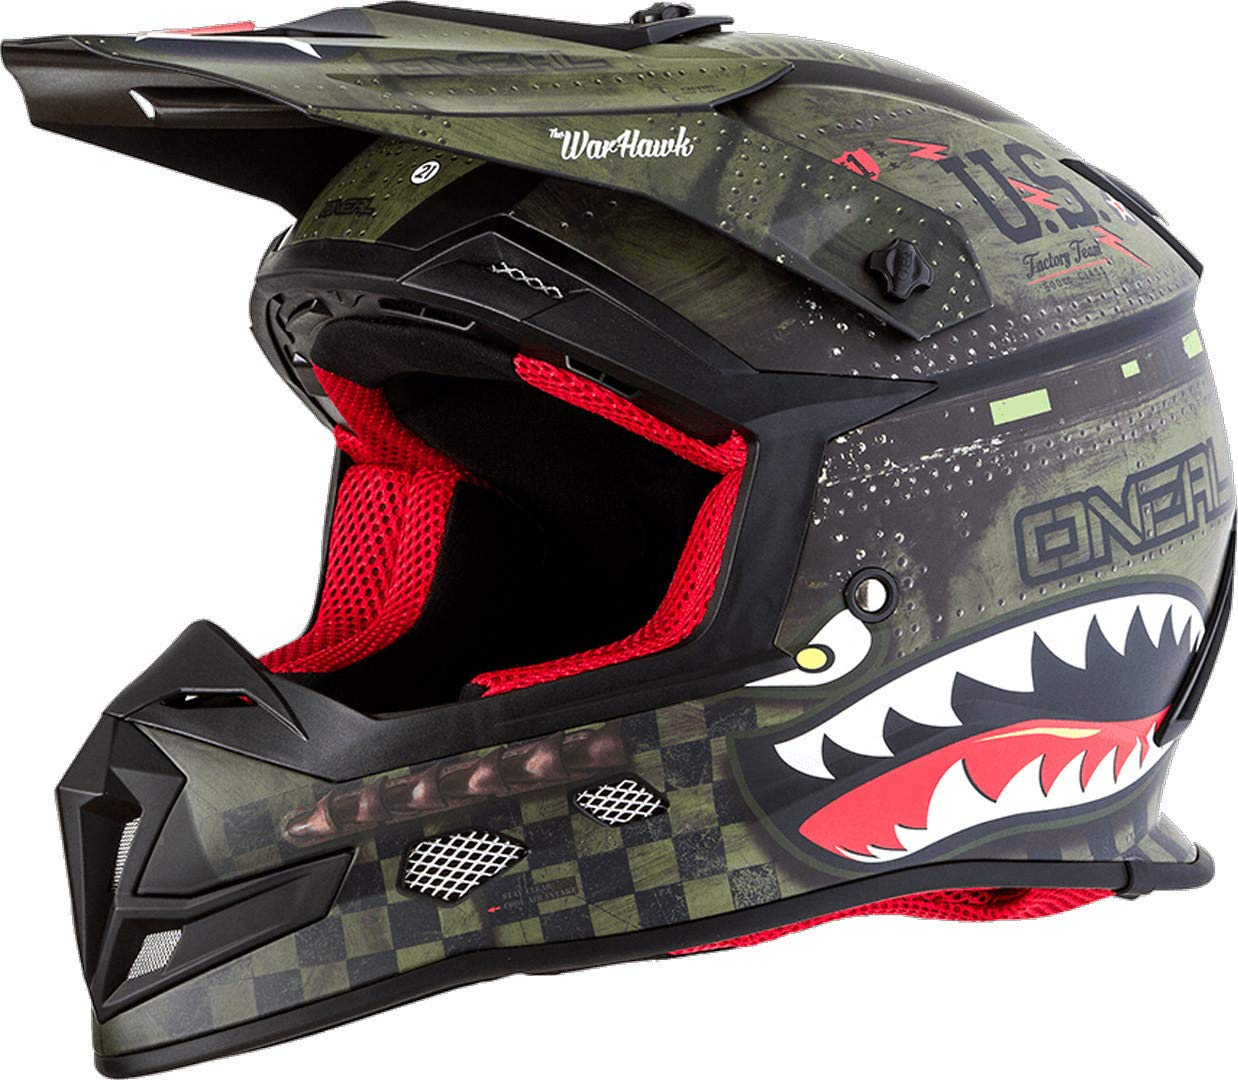 ONeal Unisex-Adult Off-Road Style 5 SRS Warhawk Helmet BLK//GRN S Black//Green Small O/'Neal 0618-282